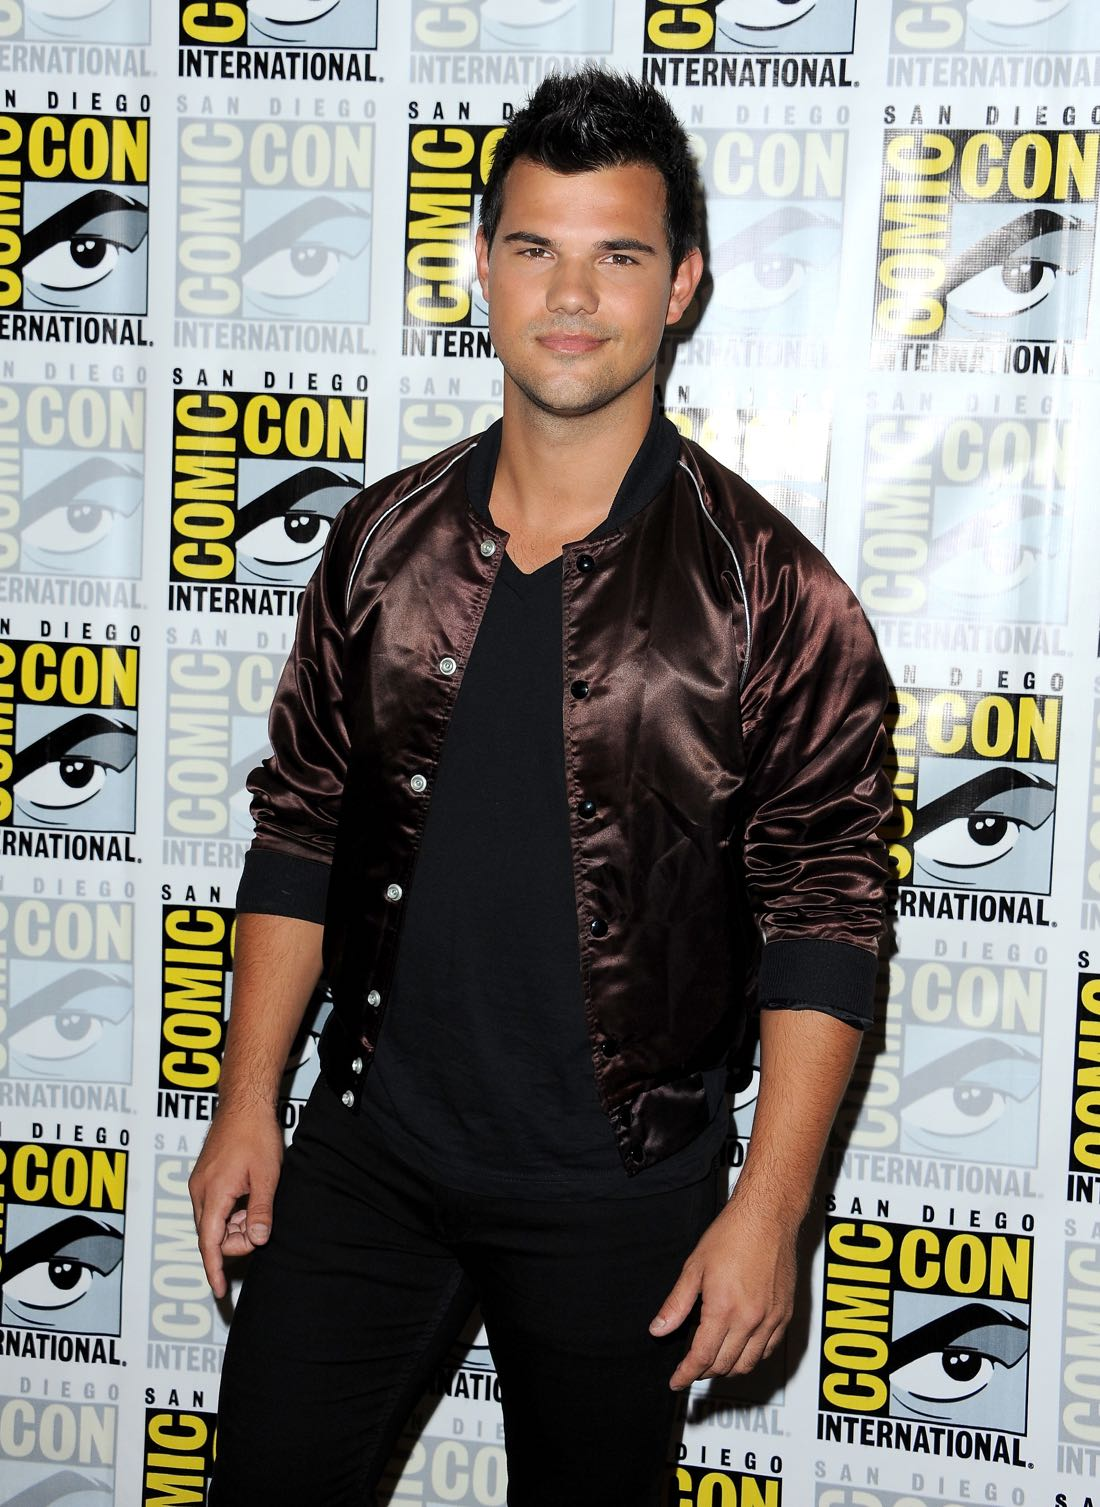 FOX FANFARE AT SAN DIEGO COMIC-CON © 2016: SCREAM QUEENS cast member Taylor Lautner during the SCREAM QUEENS press room on Friday, July 22 at the FOX FANFARE AT SAN DIEGO COMIC-CON © 2016. CR: Scott Krikland/FX © 2016 FOX BROADCASTING